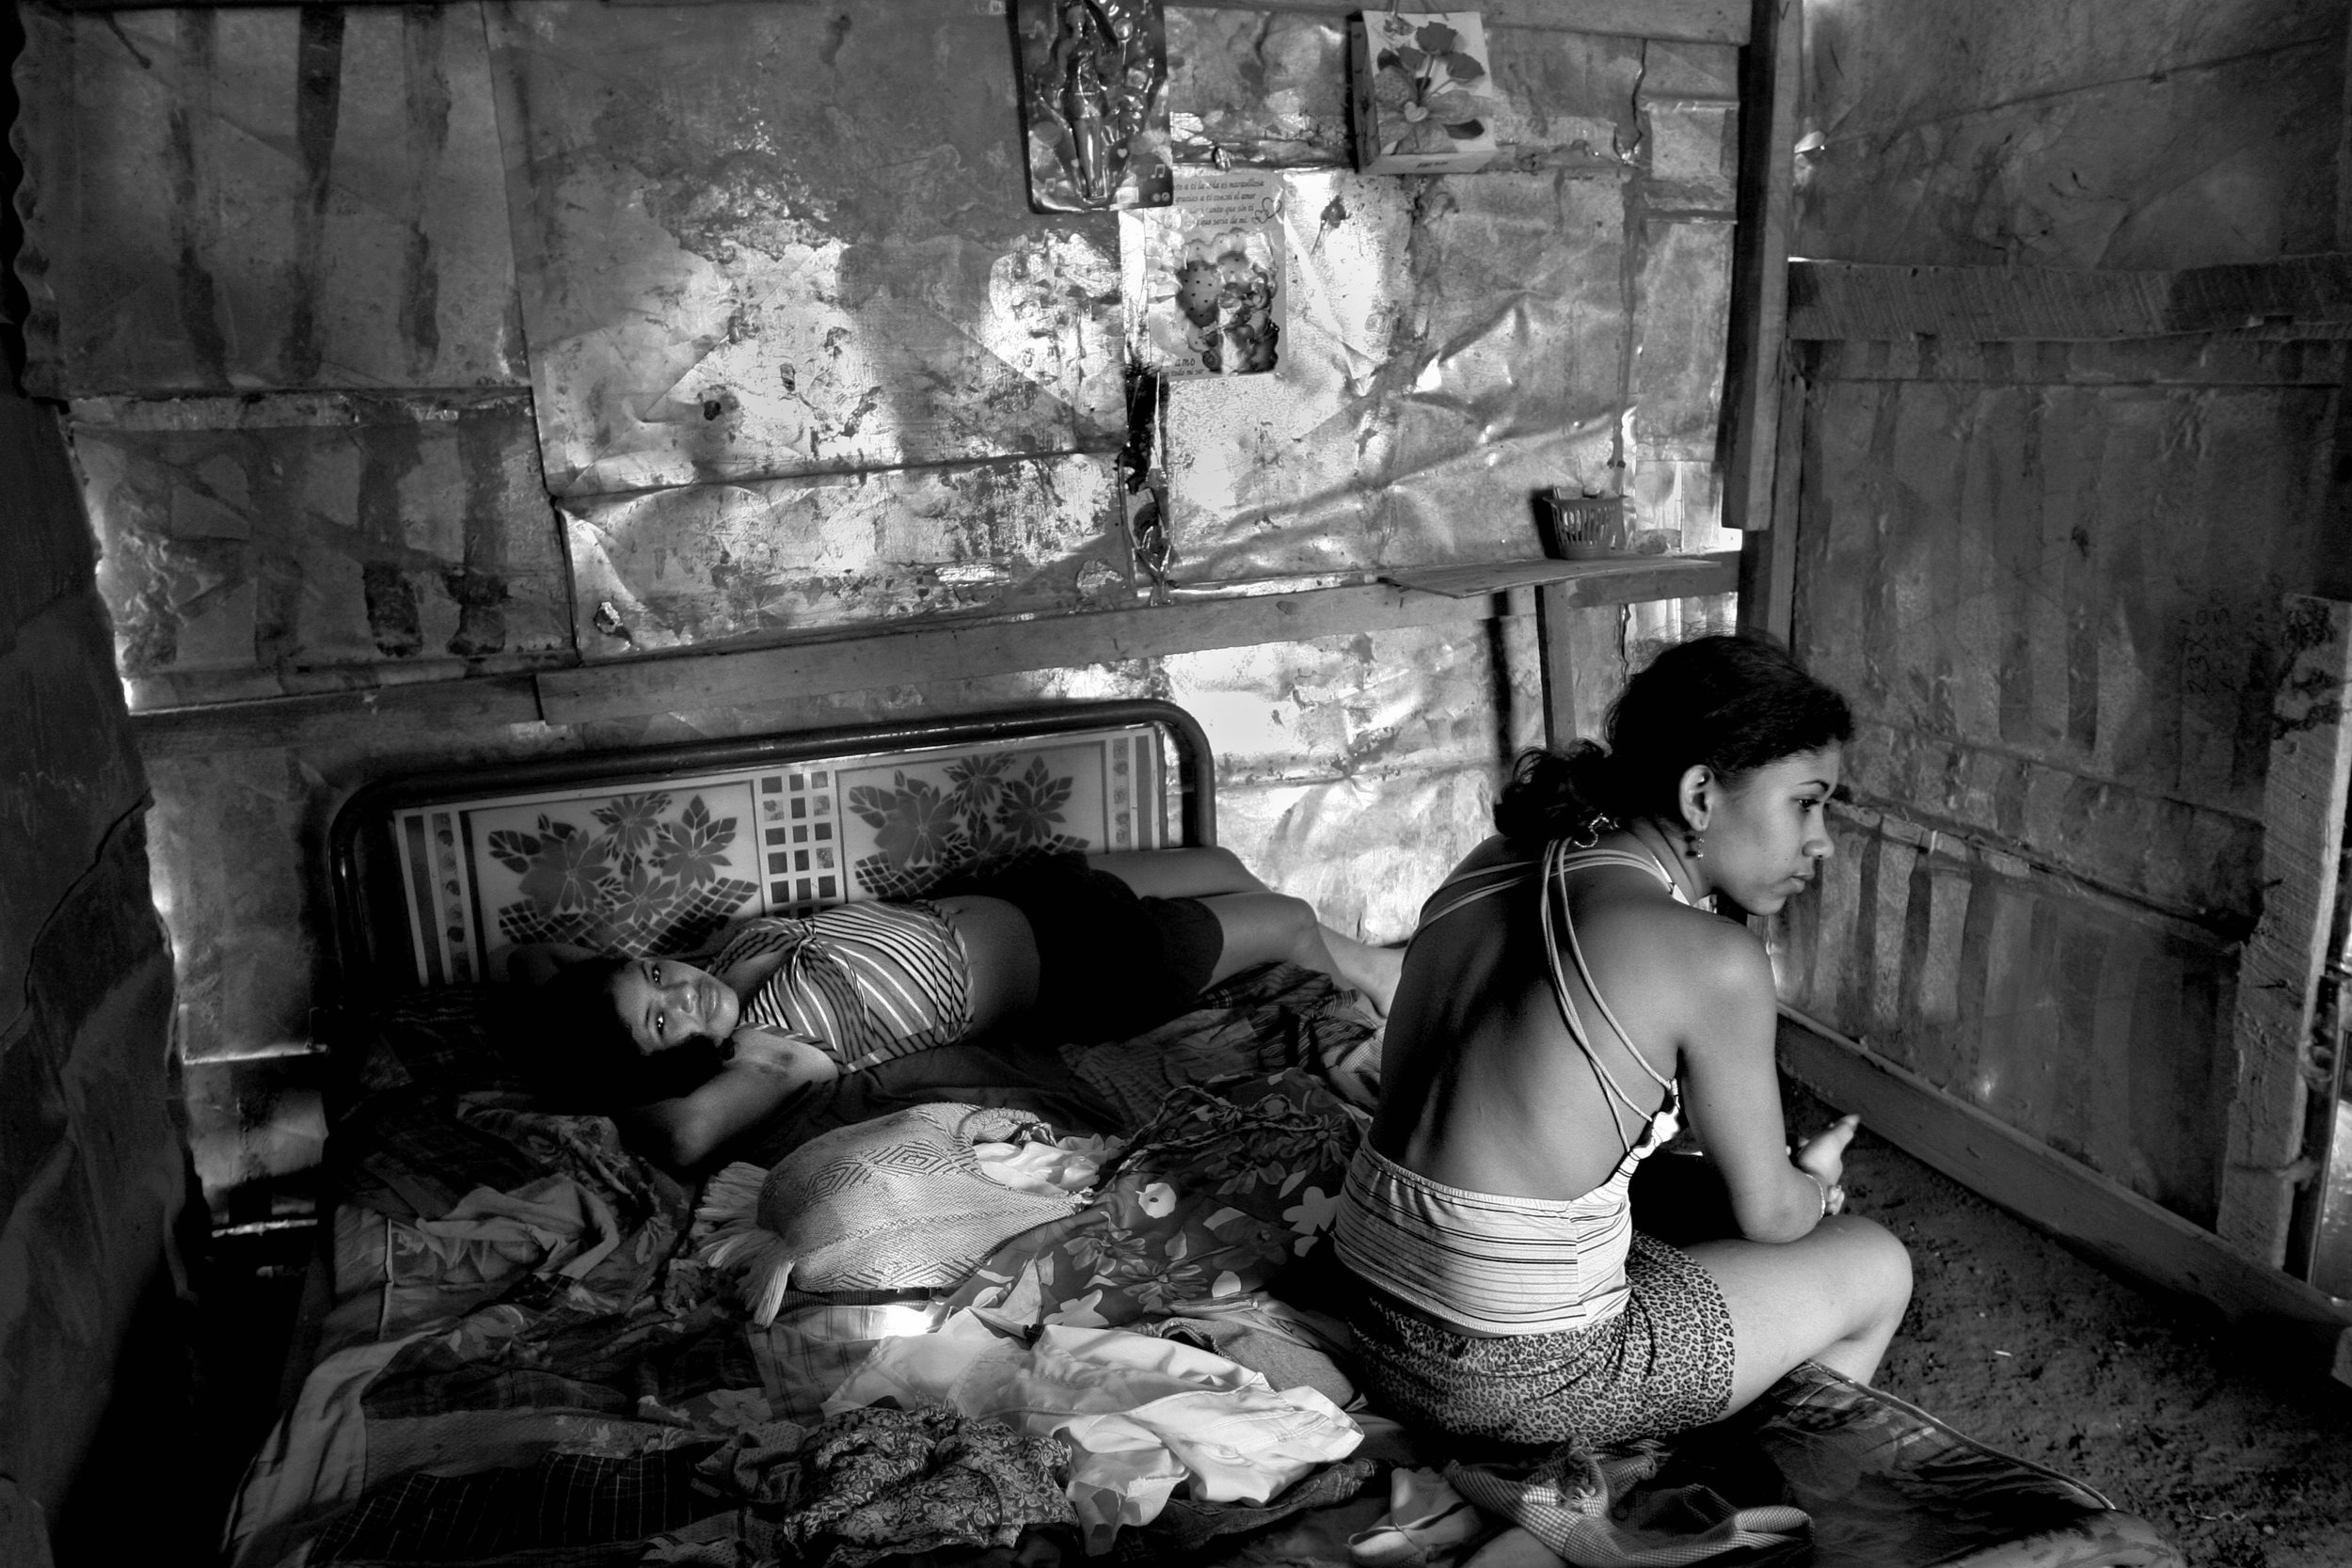 """Ivania Gonzalez, 16, right, and Rozievel, 15, both child prostitutes sit together on the bed in the room they share. Rozievel says, """"Two months after I started working my mother asked me how I got money and I told her. My mom is 60 and a diabetic and she can't work. She agreed there was no other alternative. I finished third grade. I dropped out when we didn't' have any money. I go out every night and I make 100 -150 Cordoba's/night."""""""